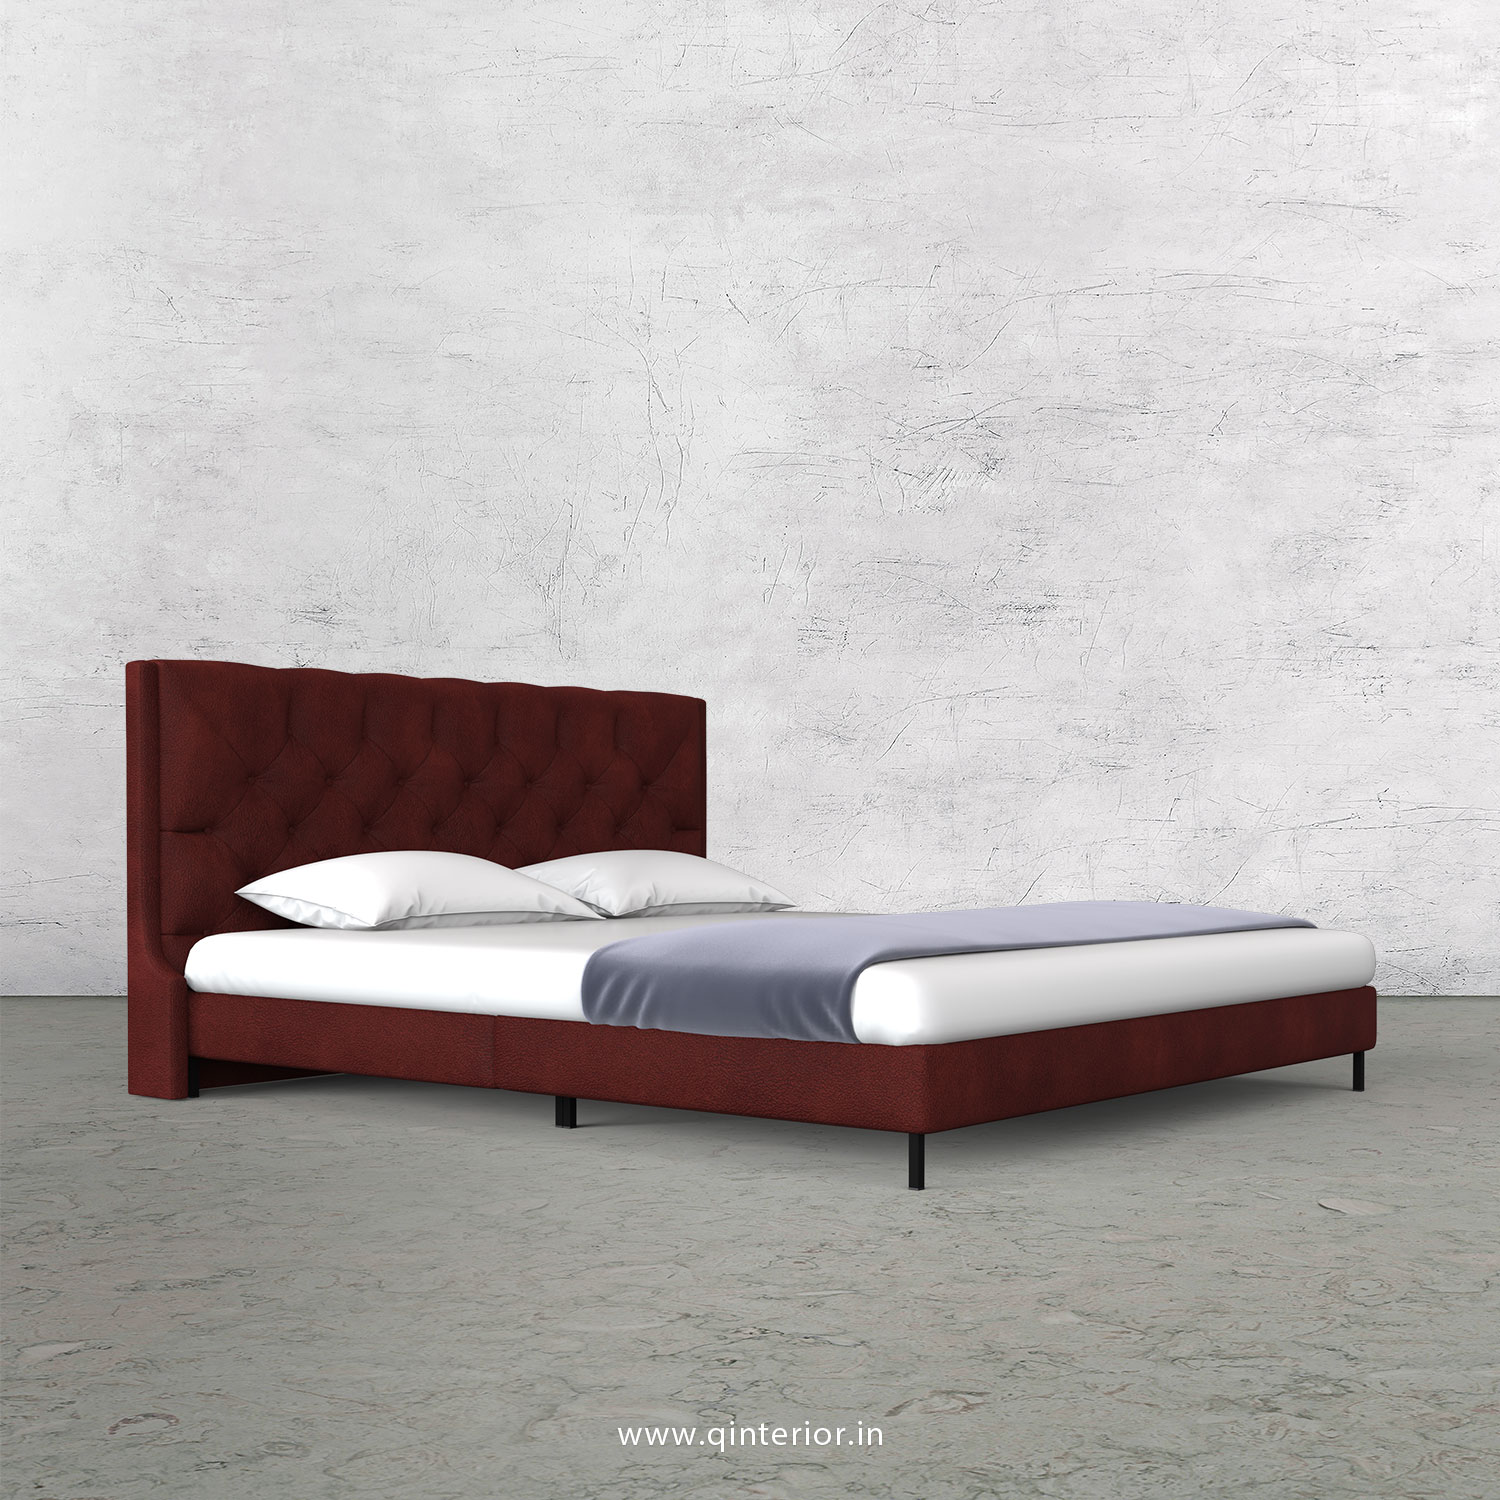 Scorpius King Size Bed in Fab Leather Fabric - KBD003 FL08